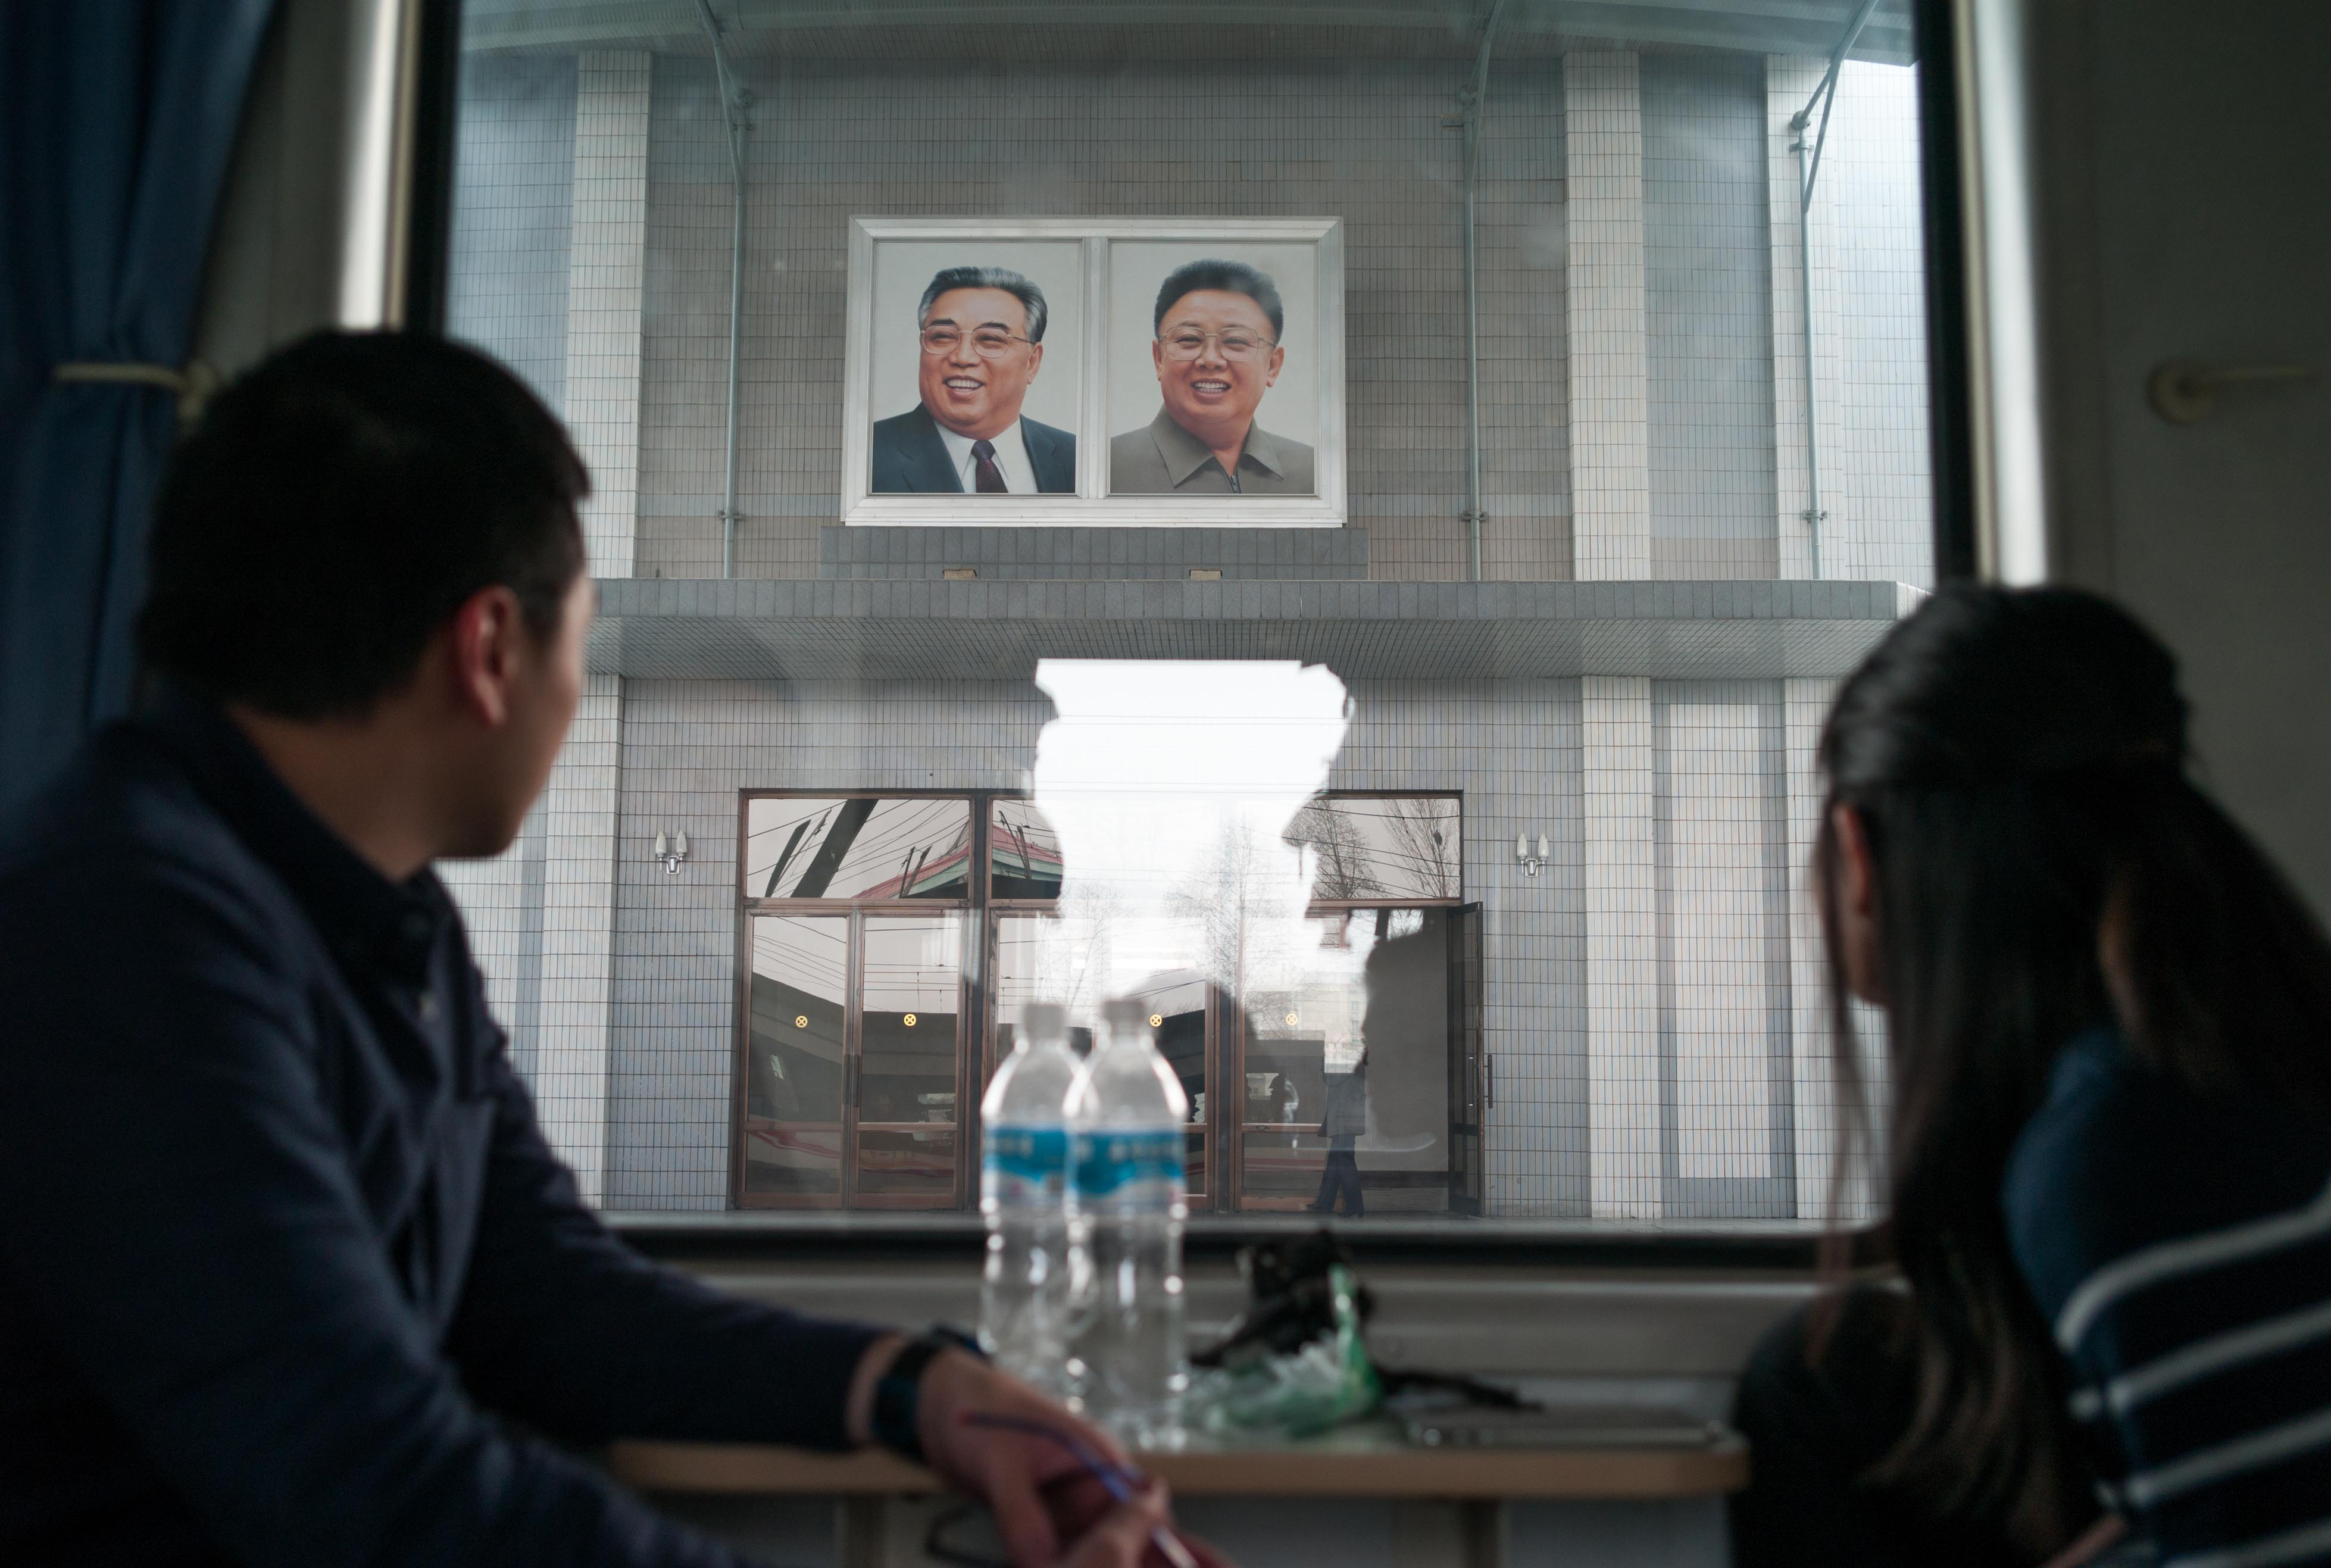 My five days in the DPRK (a.k.a. North Korea)